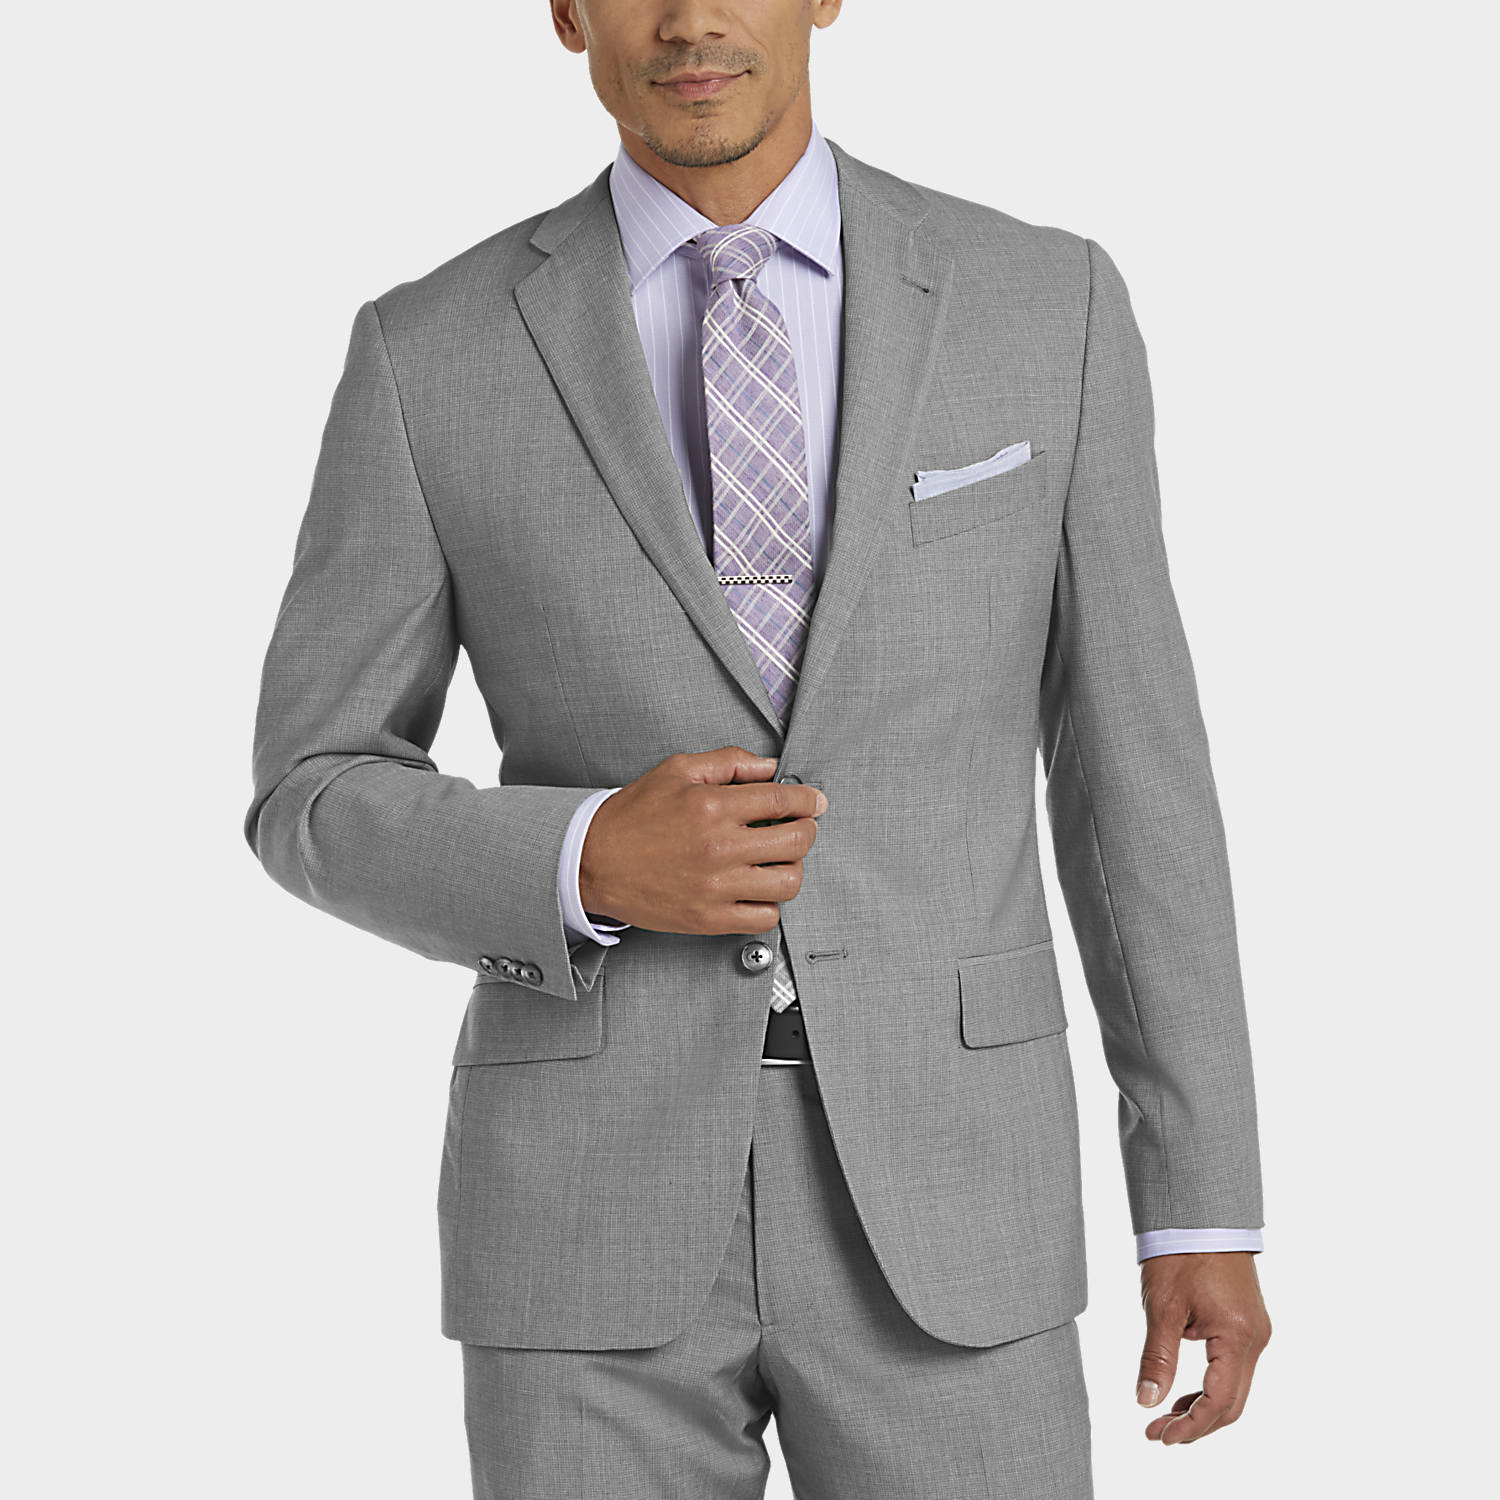 Boys Slim Fit Suit Light Grey with Black Dress Tie. by Tuxgear. $ - $ $ 69 $ 79 FREE Shipping on eligible orders. out of 5 stars 4. Product Description This boys' slim fitting light grey suit is a single breasted classic 2.